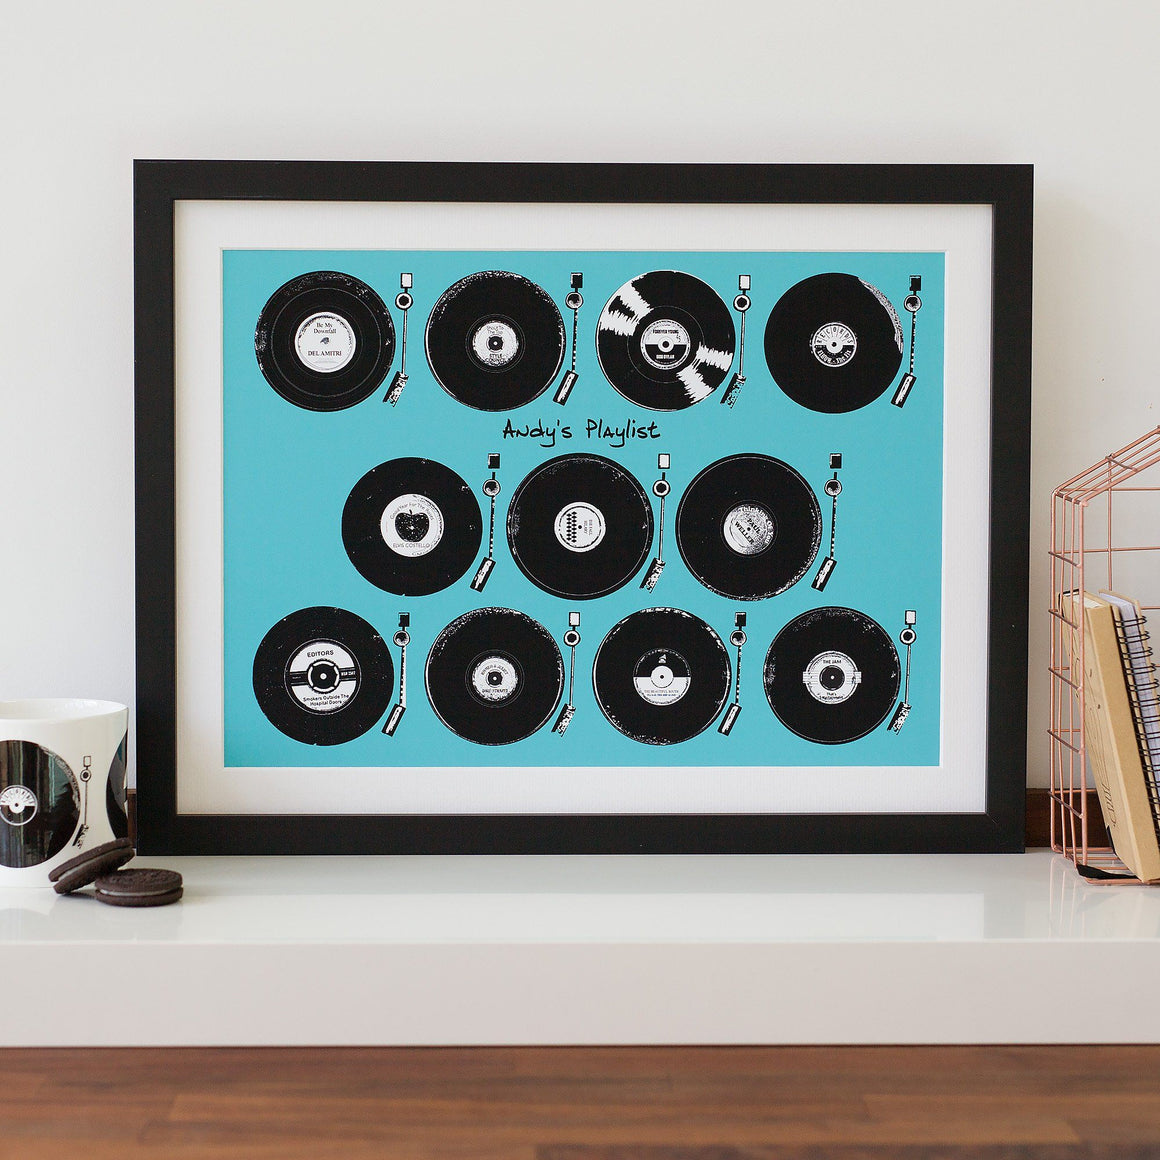 Vinyl LP Album Playlist Print